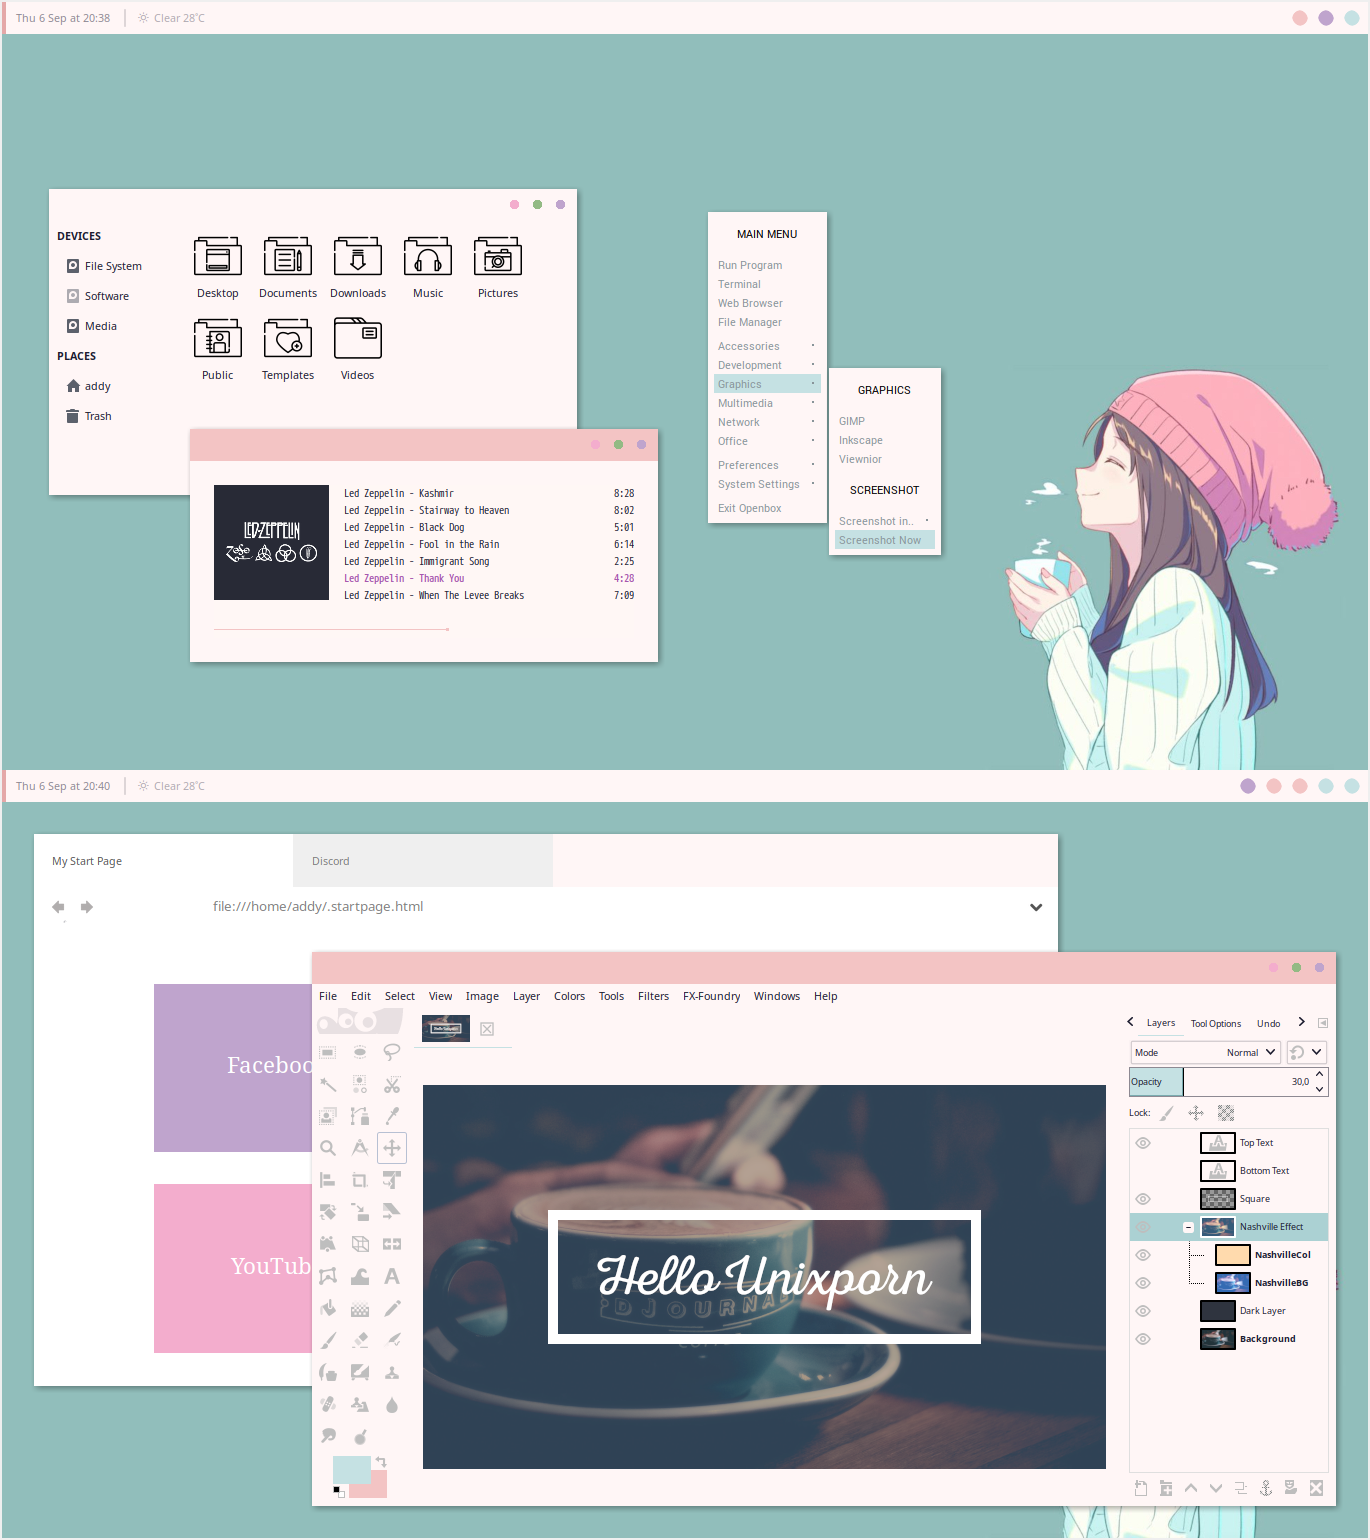 [Openbox] Thank You by addy-dclxvi